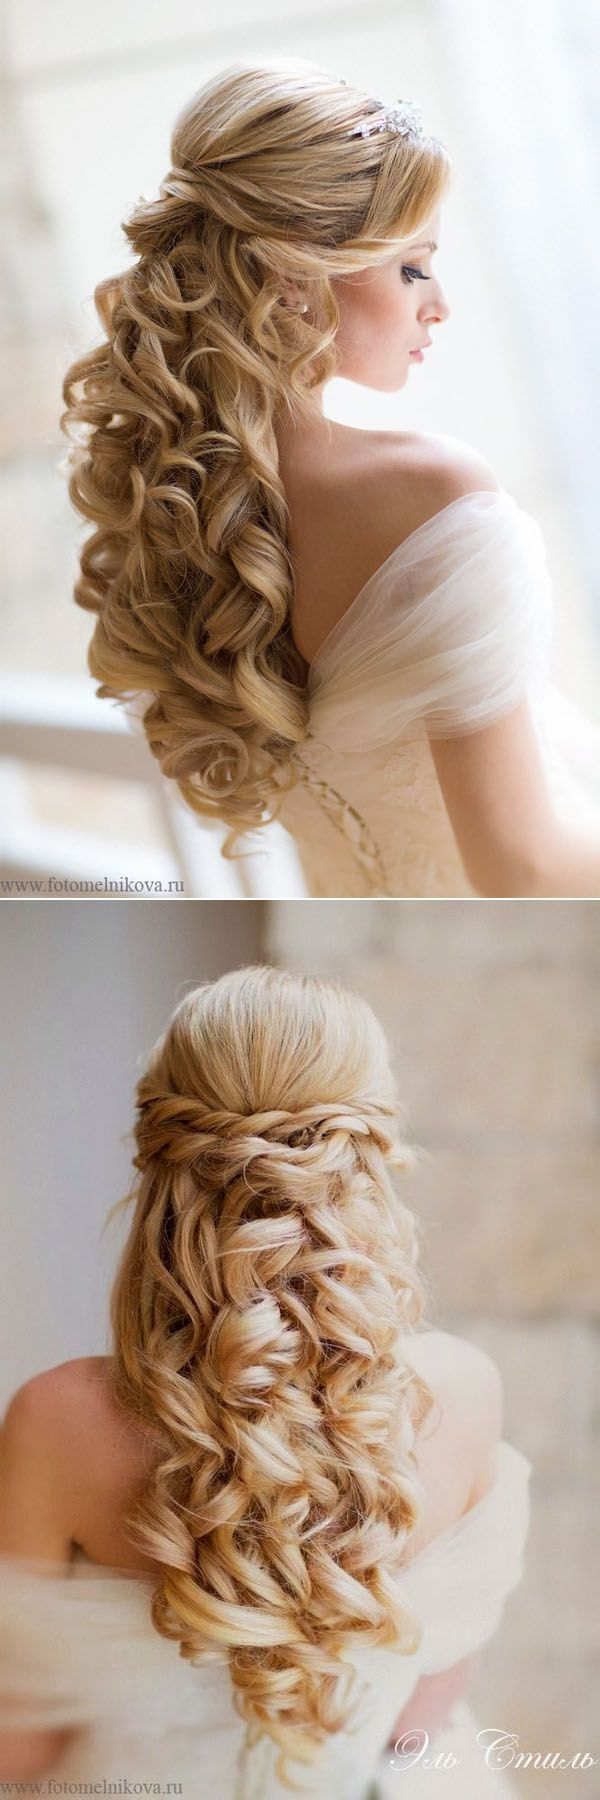 20 awesome half up half down wedding hairstyle ideas | loose curls